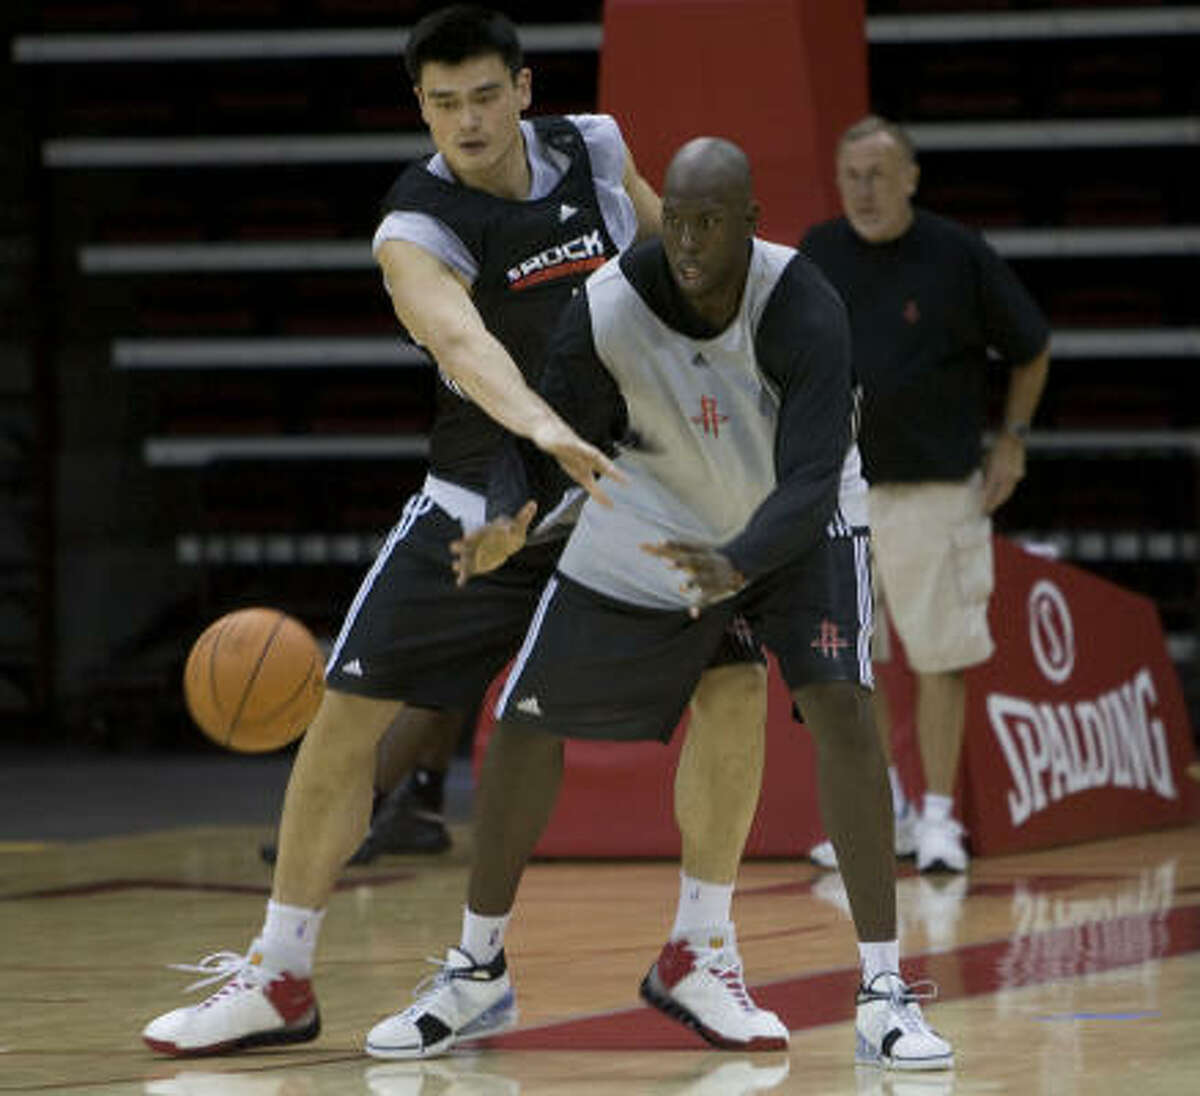 Marcus Campbell (center) Time with Rockets: 2008 training camp CBA team(s): Fujian, Guangshu, Yunnan